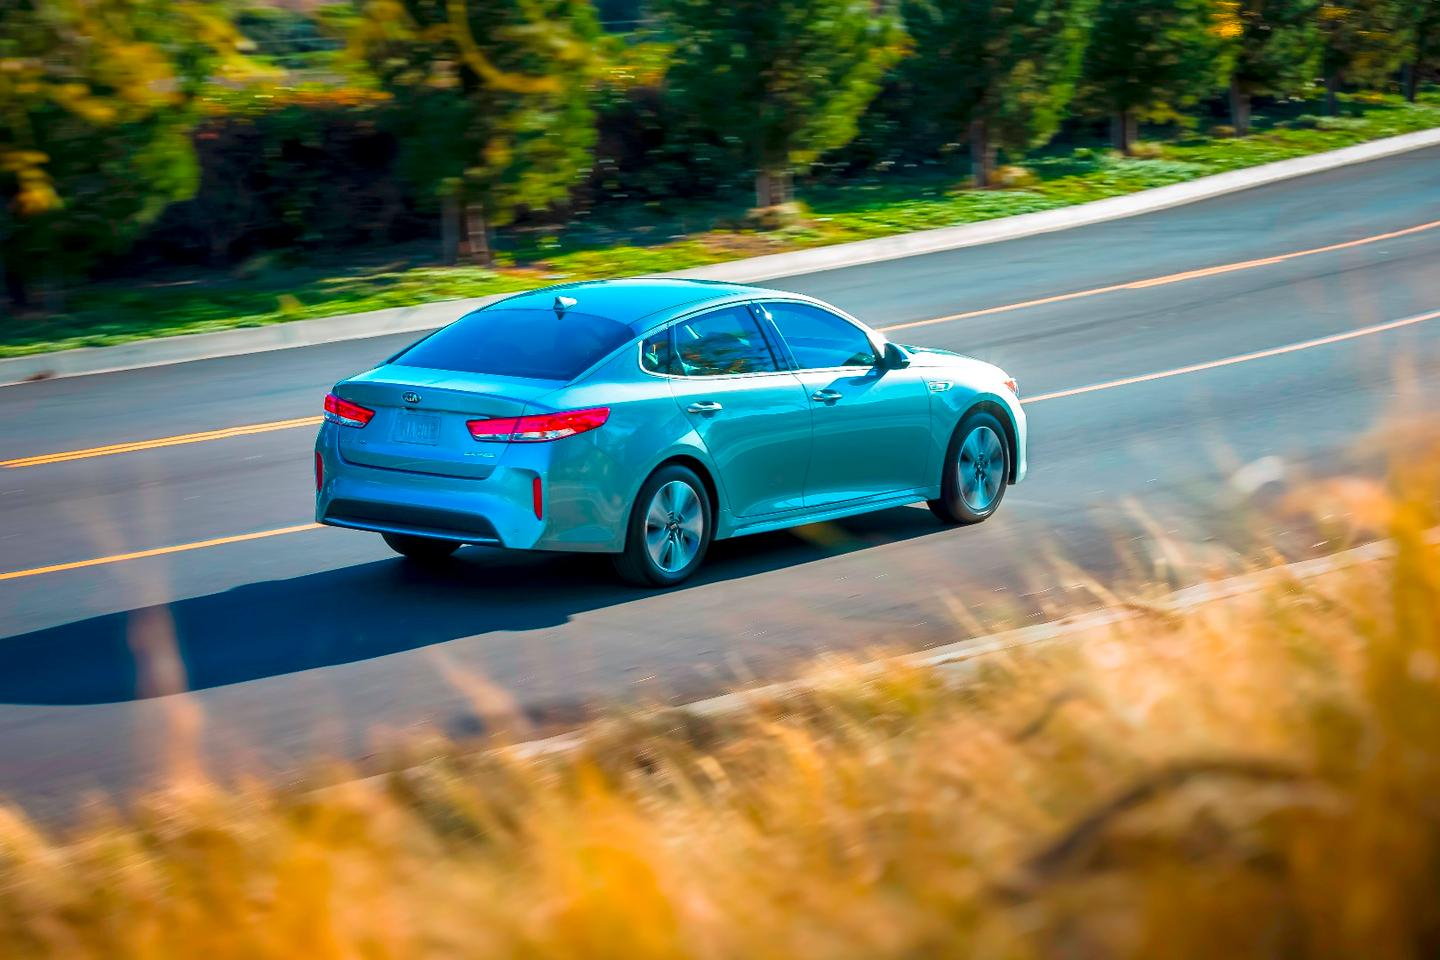 The 2017 Kia Optima Hybrid aims to improve fuel economy by ten percent over the current Optima Hybrid